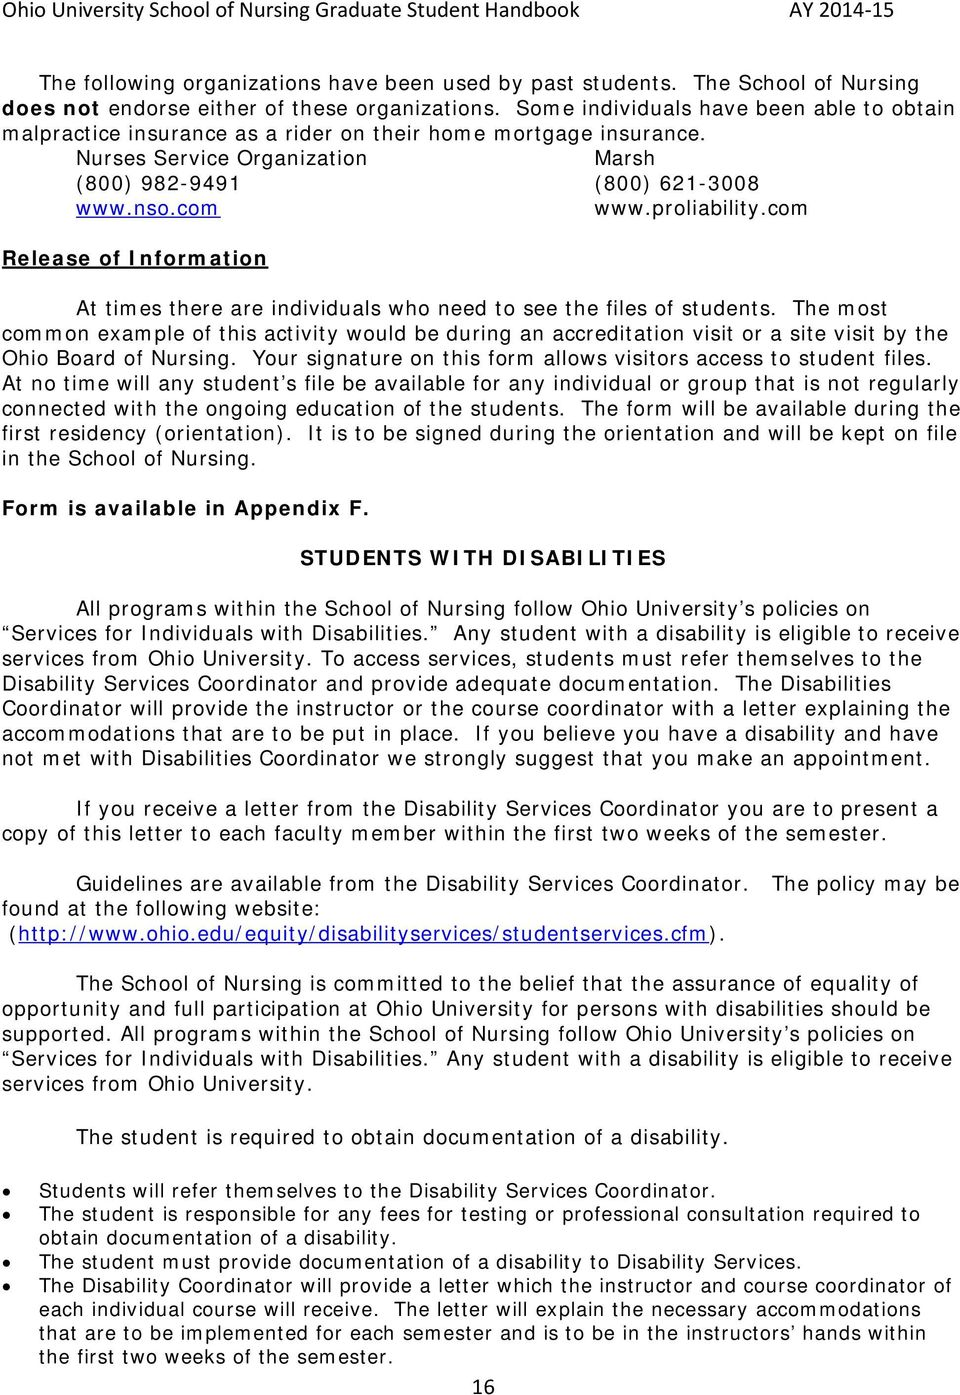 proliability.com Release of Information At times there are individuals who need to see the files of students.